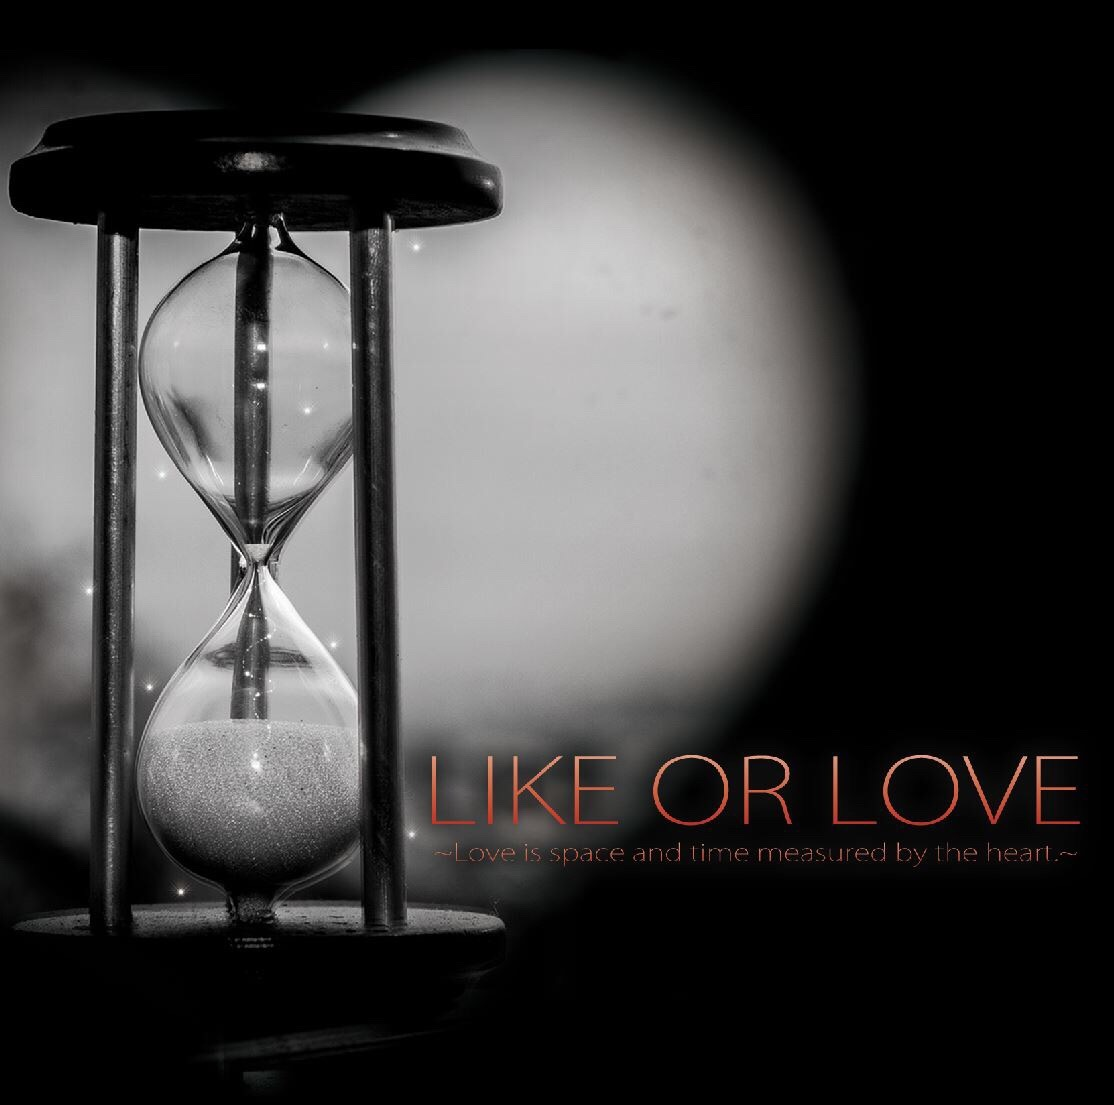 LIKE OR LOVE ~Love is space and time measured by the heart.~